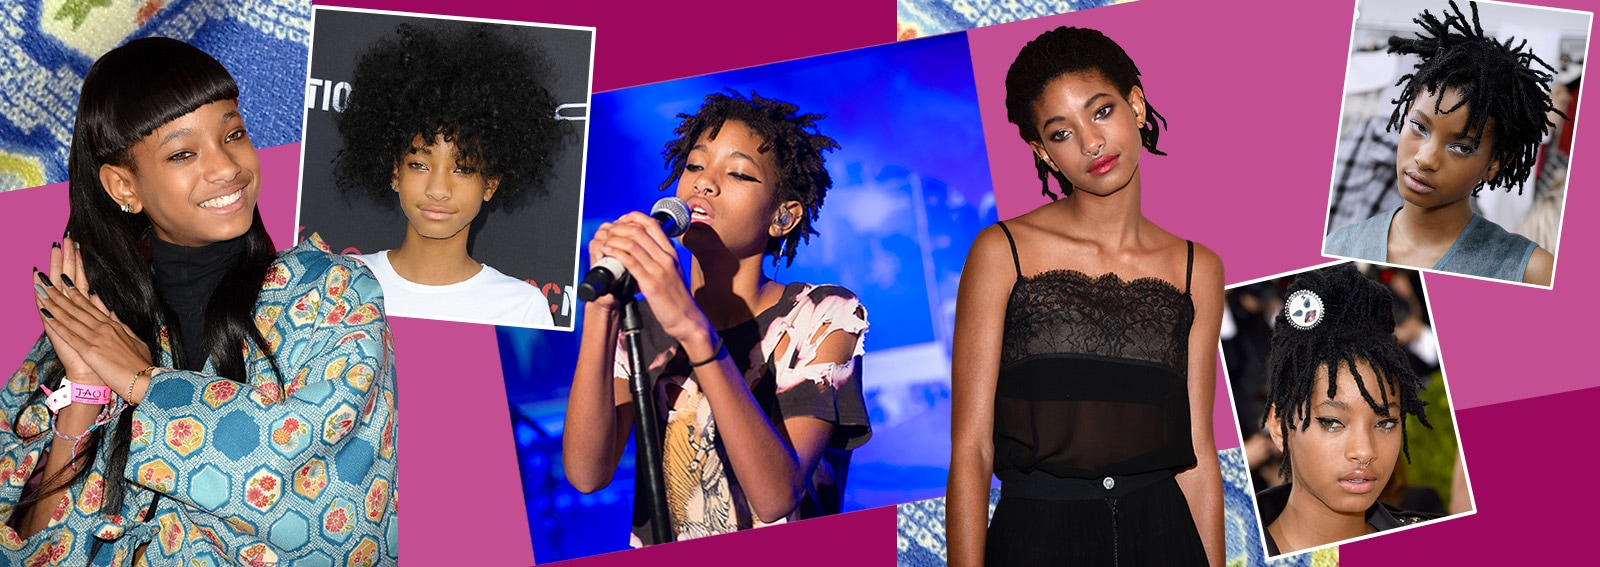 Willow Smith beauty look: i trucchi e le acconciature più cool